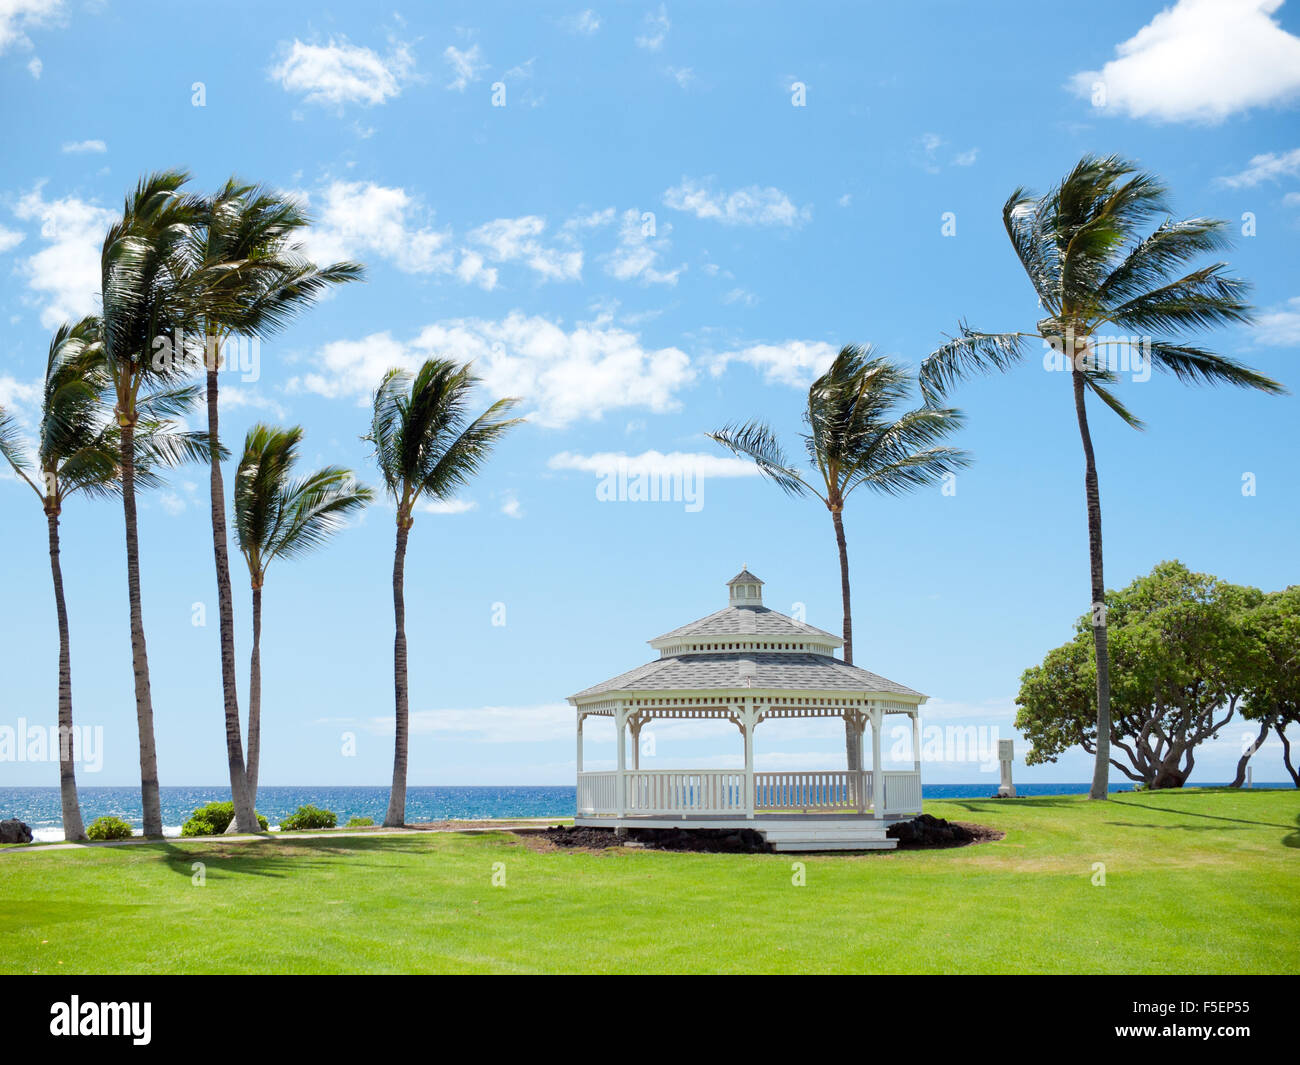 The Turtle Pointe Gazebo, breezy coconut palm trees, and the Pacific Ocean at the Fairmont Orchid on the Kohala - Stock Image